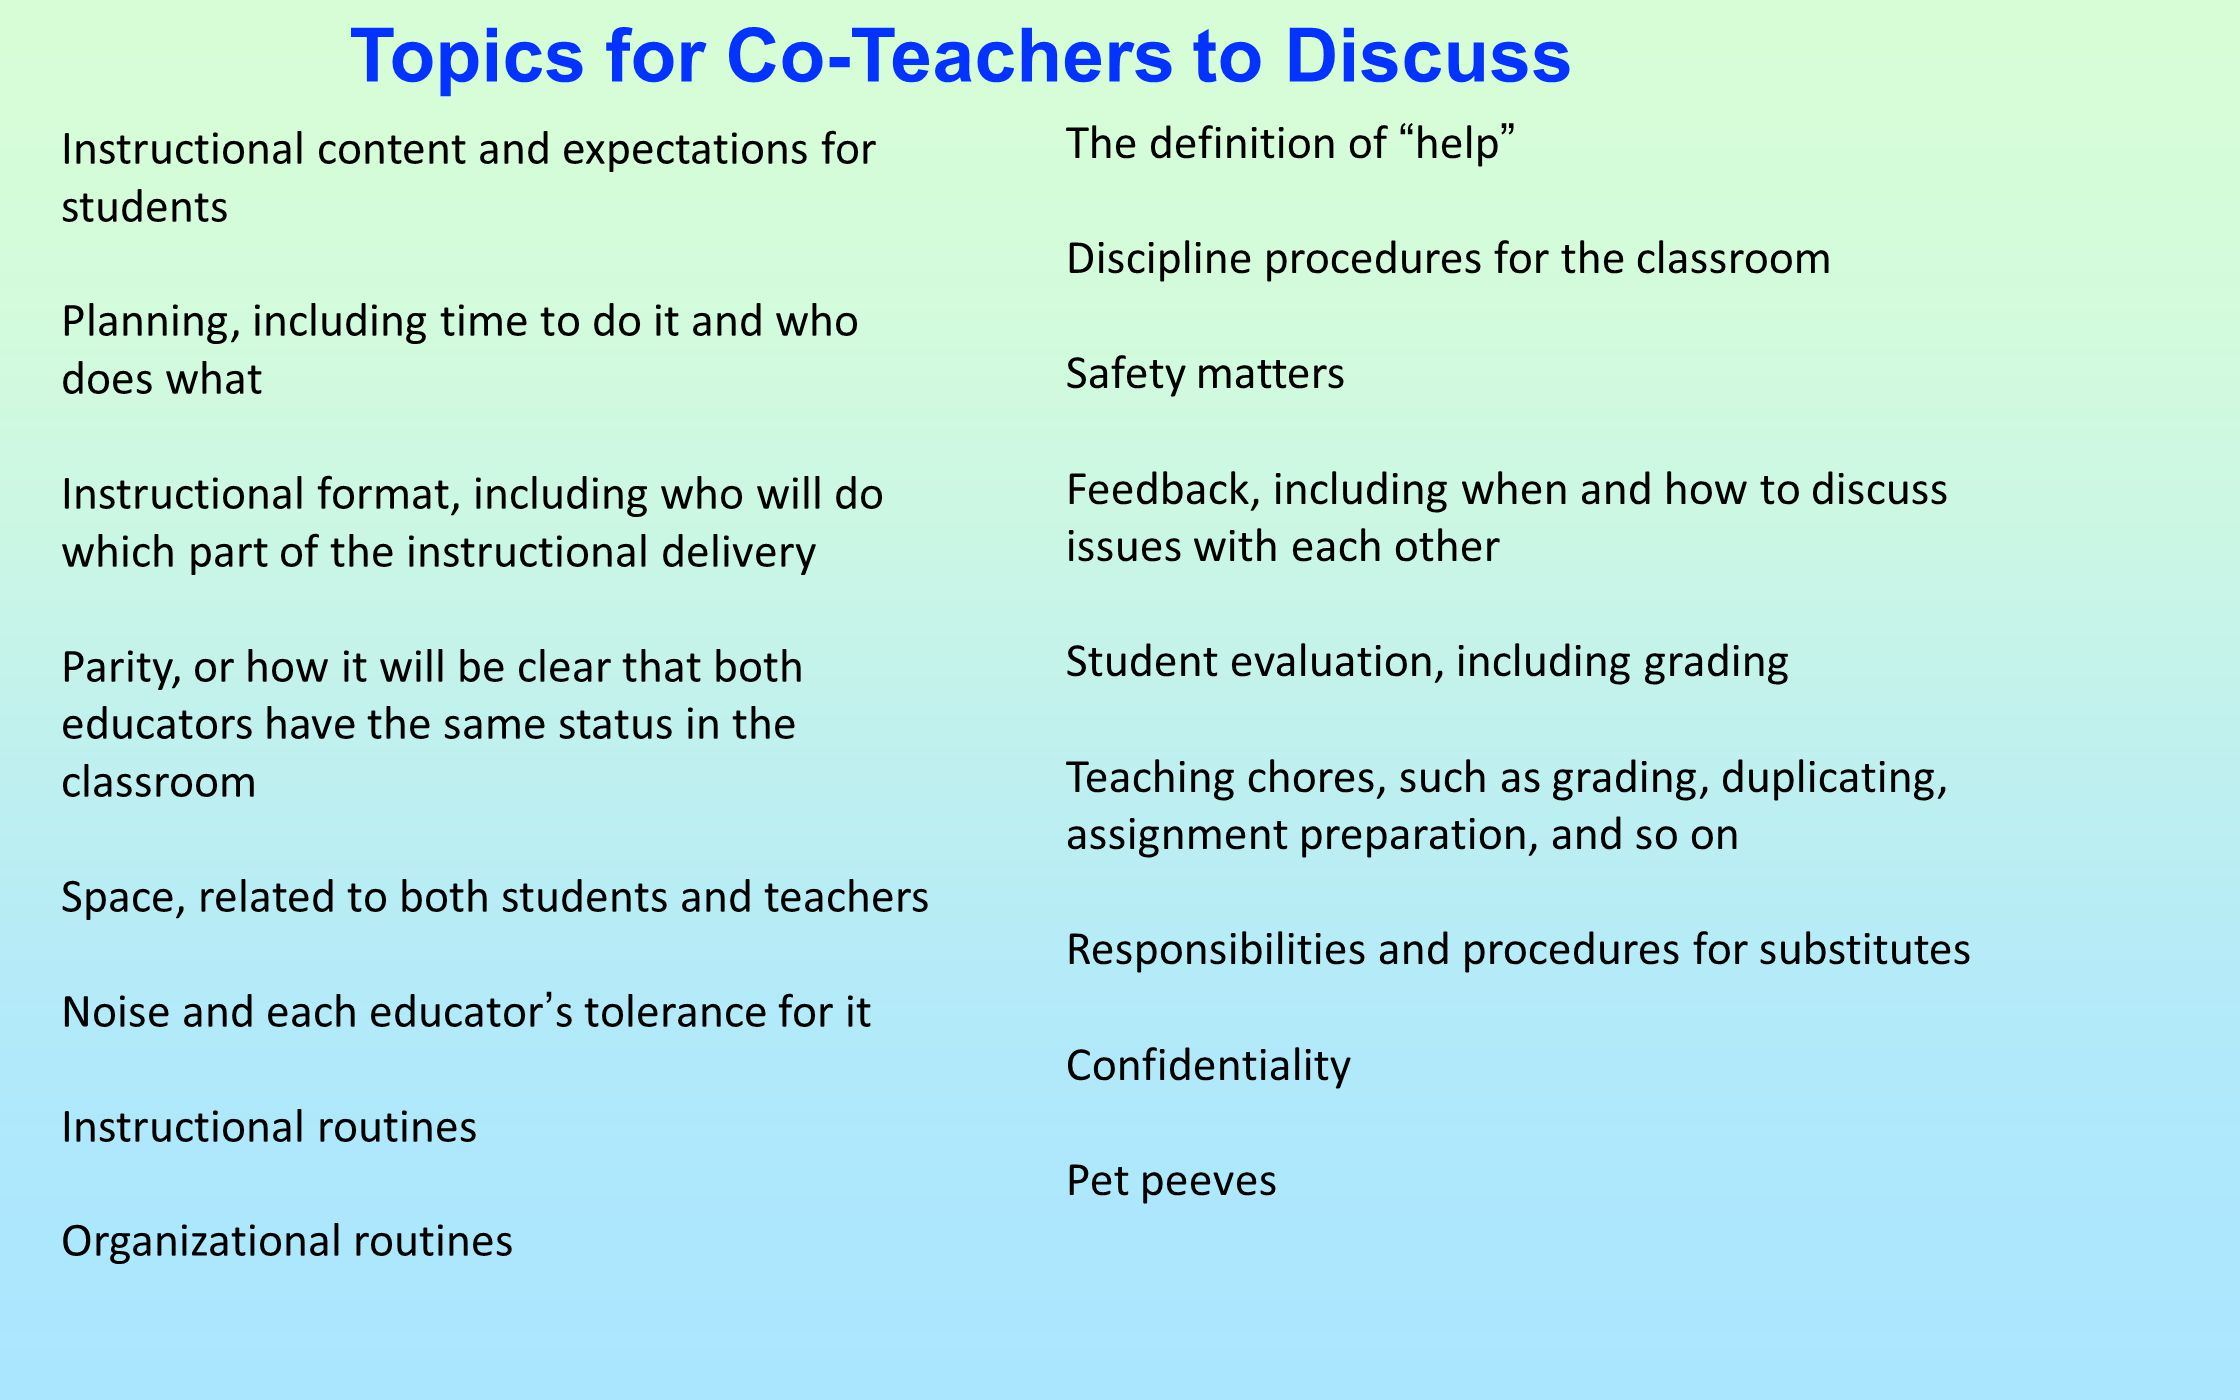 Topics for Co-Teachers to Discuss